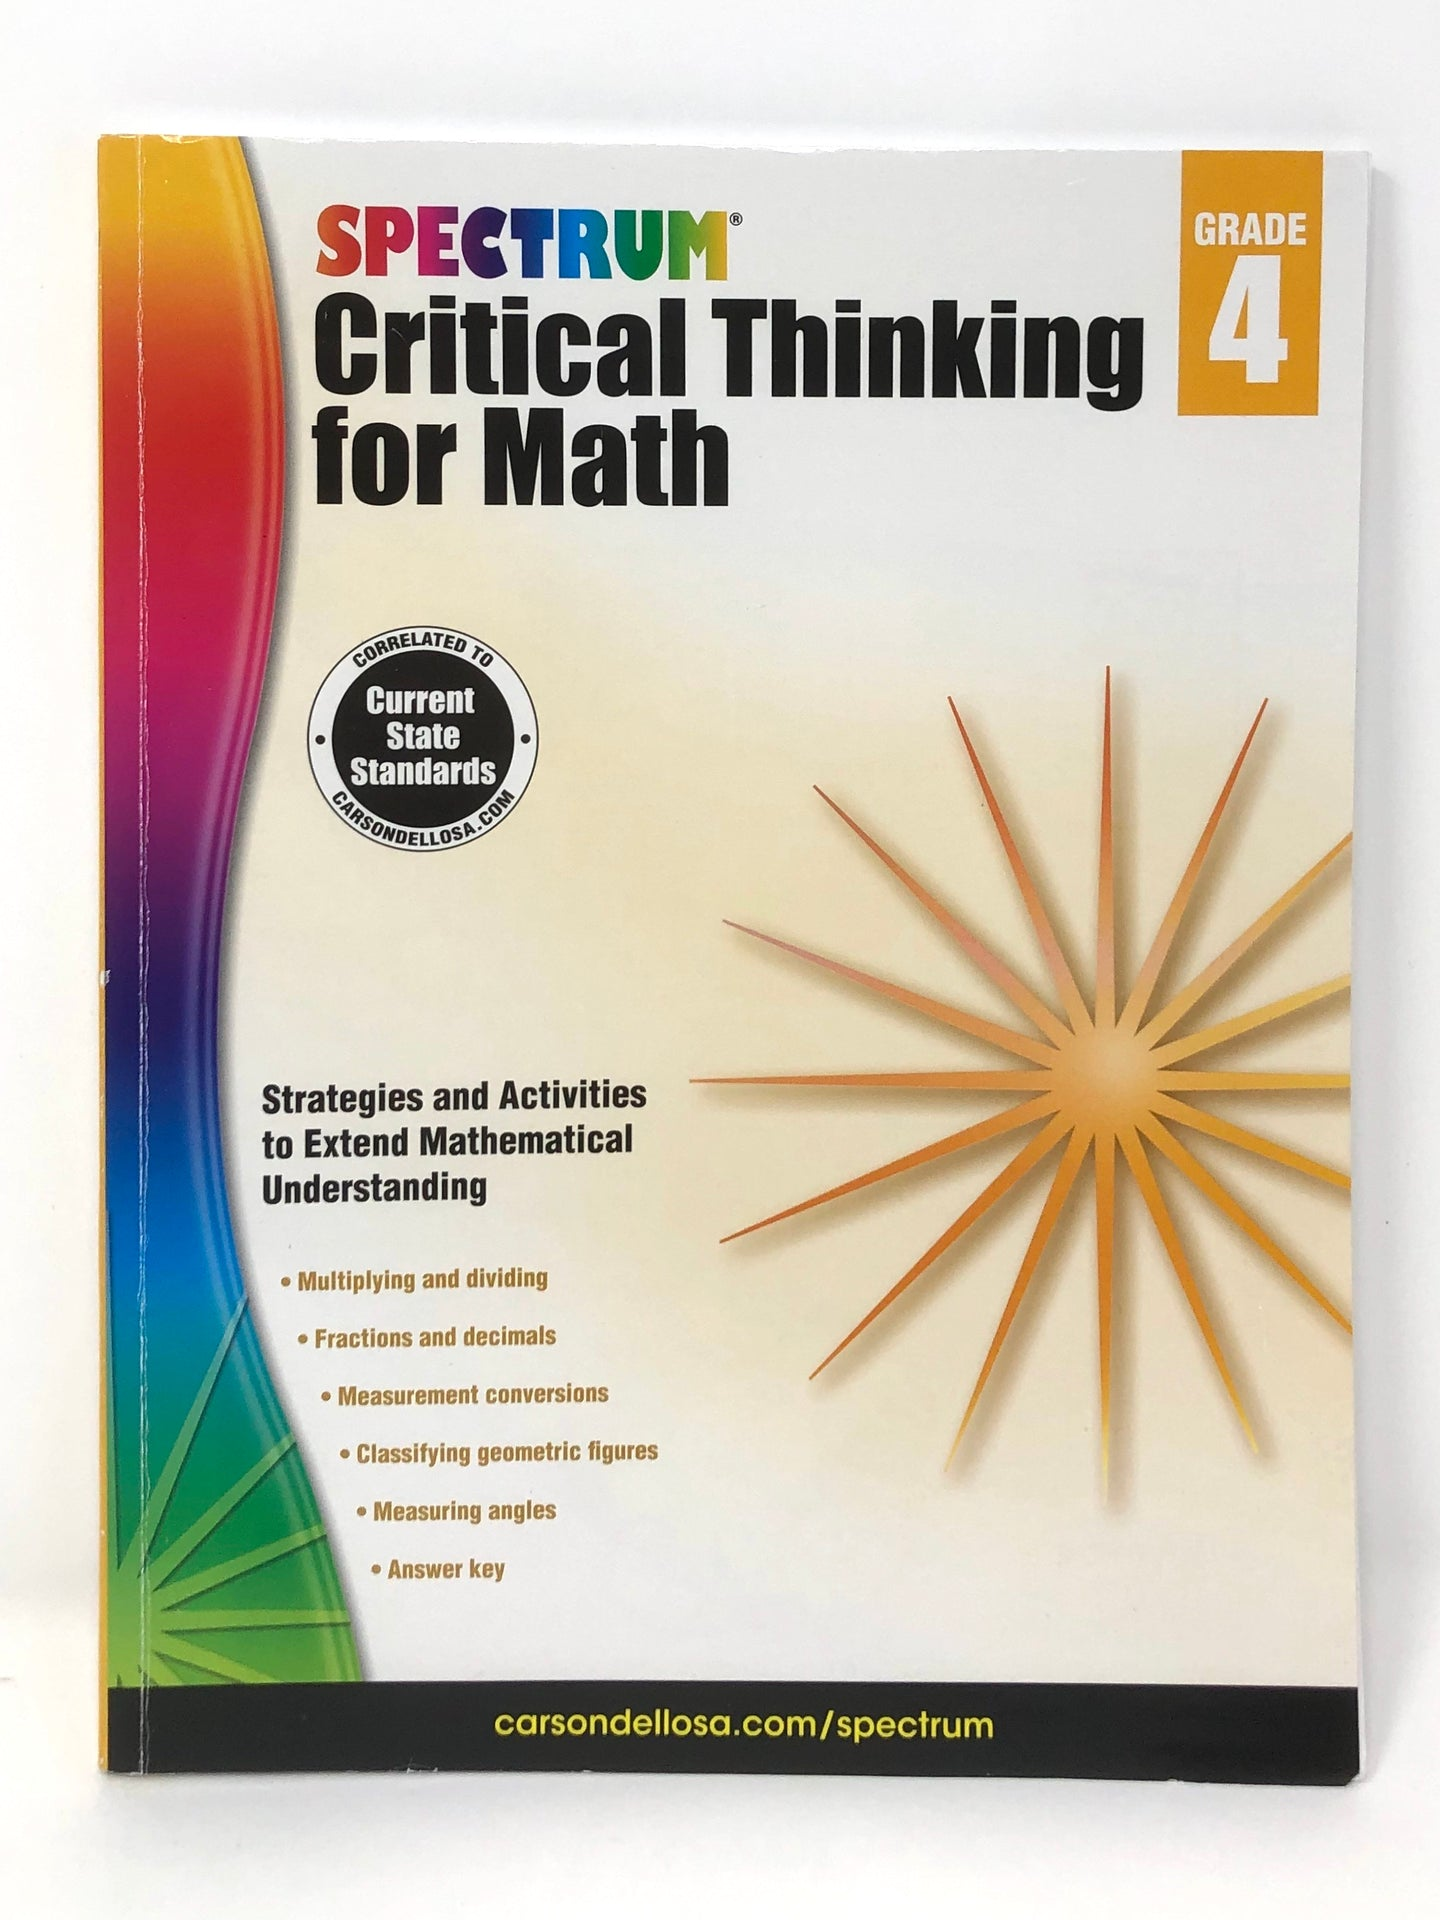 Spectrum Critical Thinking for Math- Grade 4 (Used-Worn/Acceptable) - Little Green Schoolhouse Books